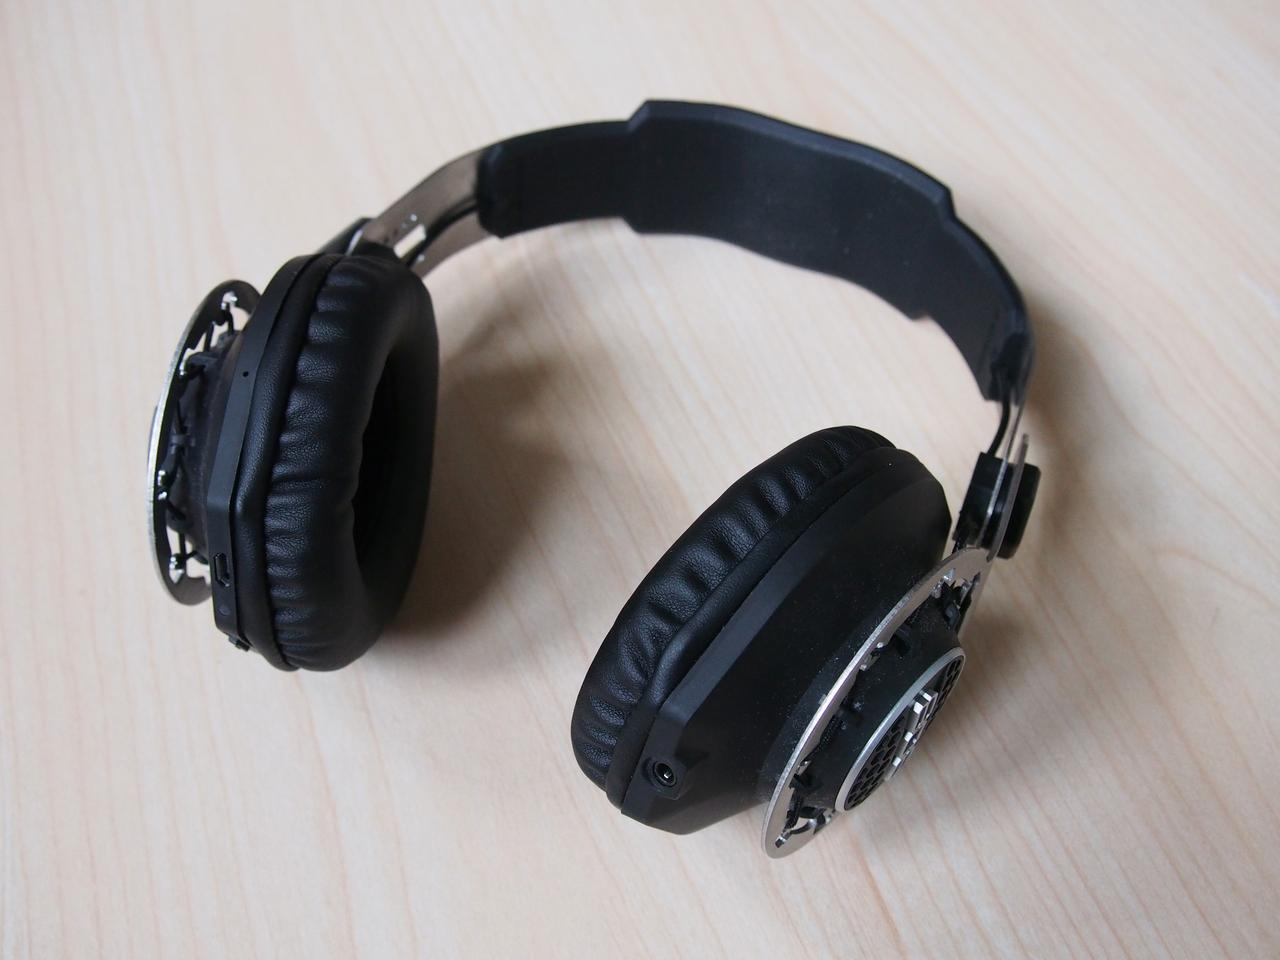 Sound quality is a mixed bag: disappointing in Bluetooth mode, but they sound good when wired (Photo: Adam Williams/Gizmag)